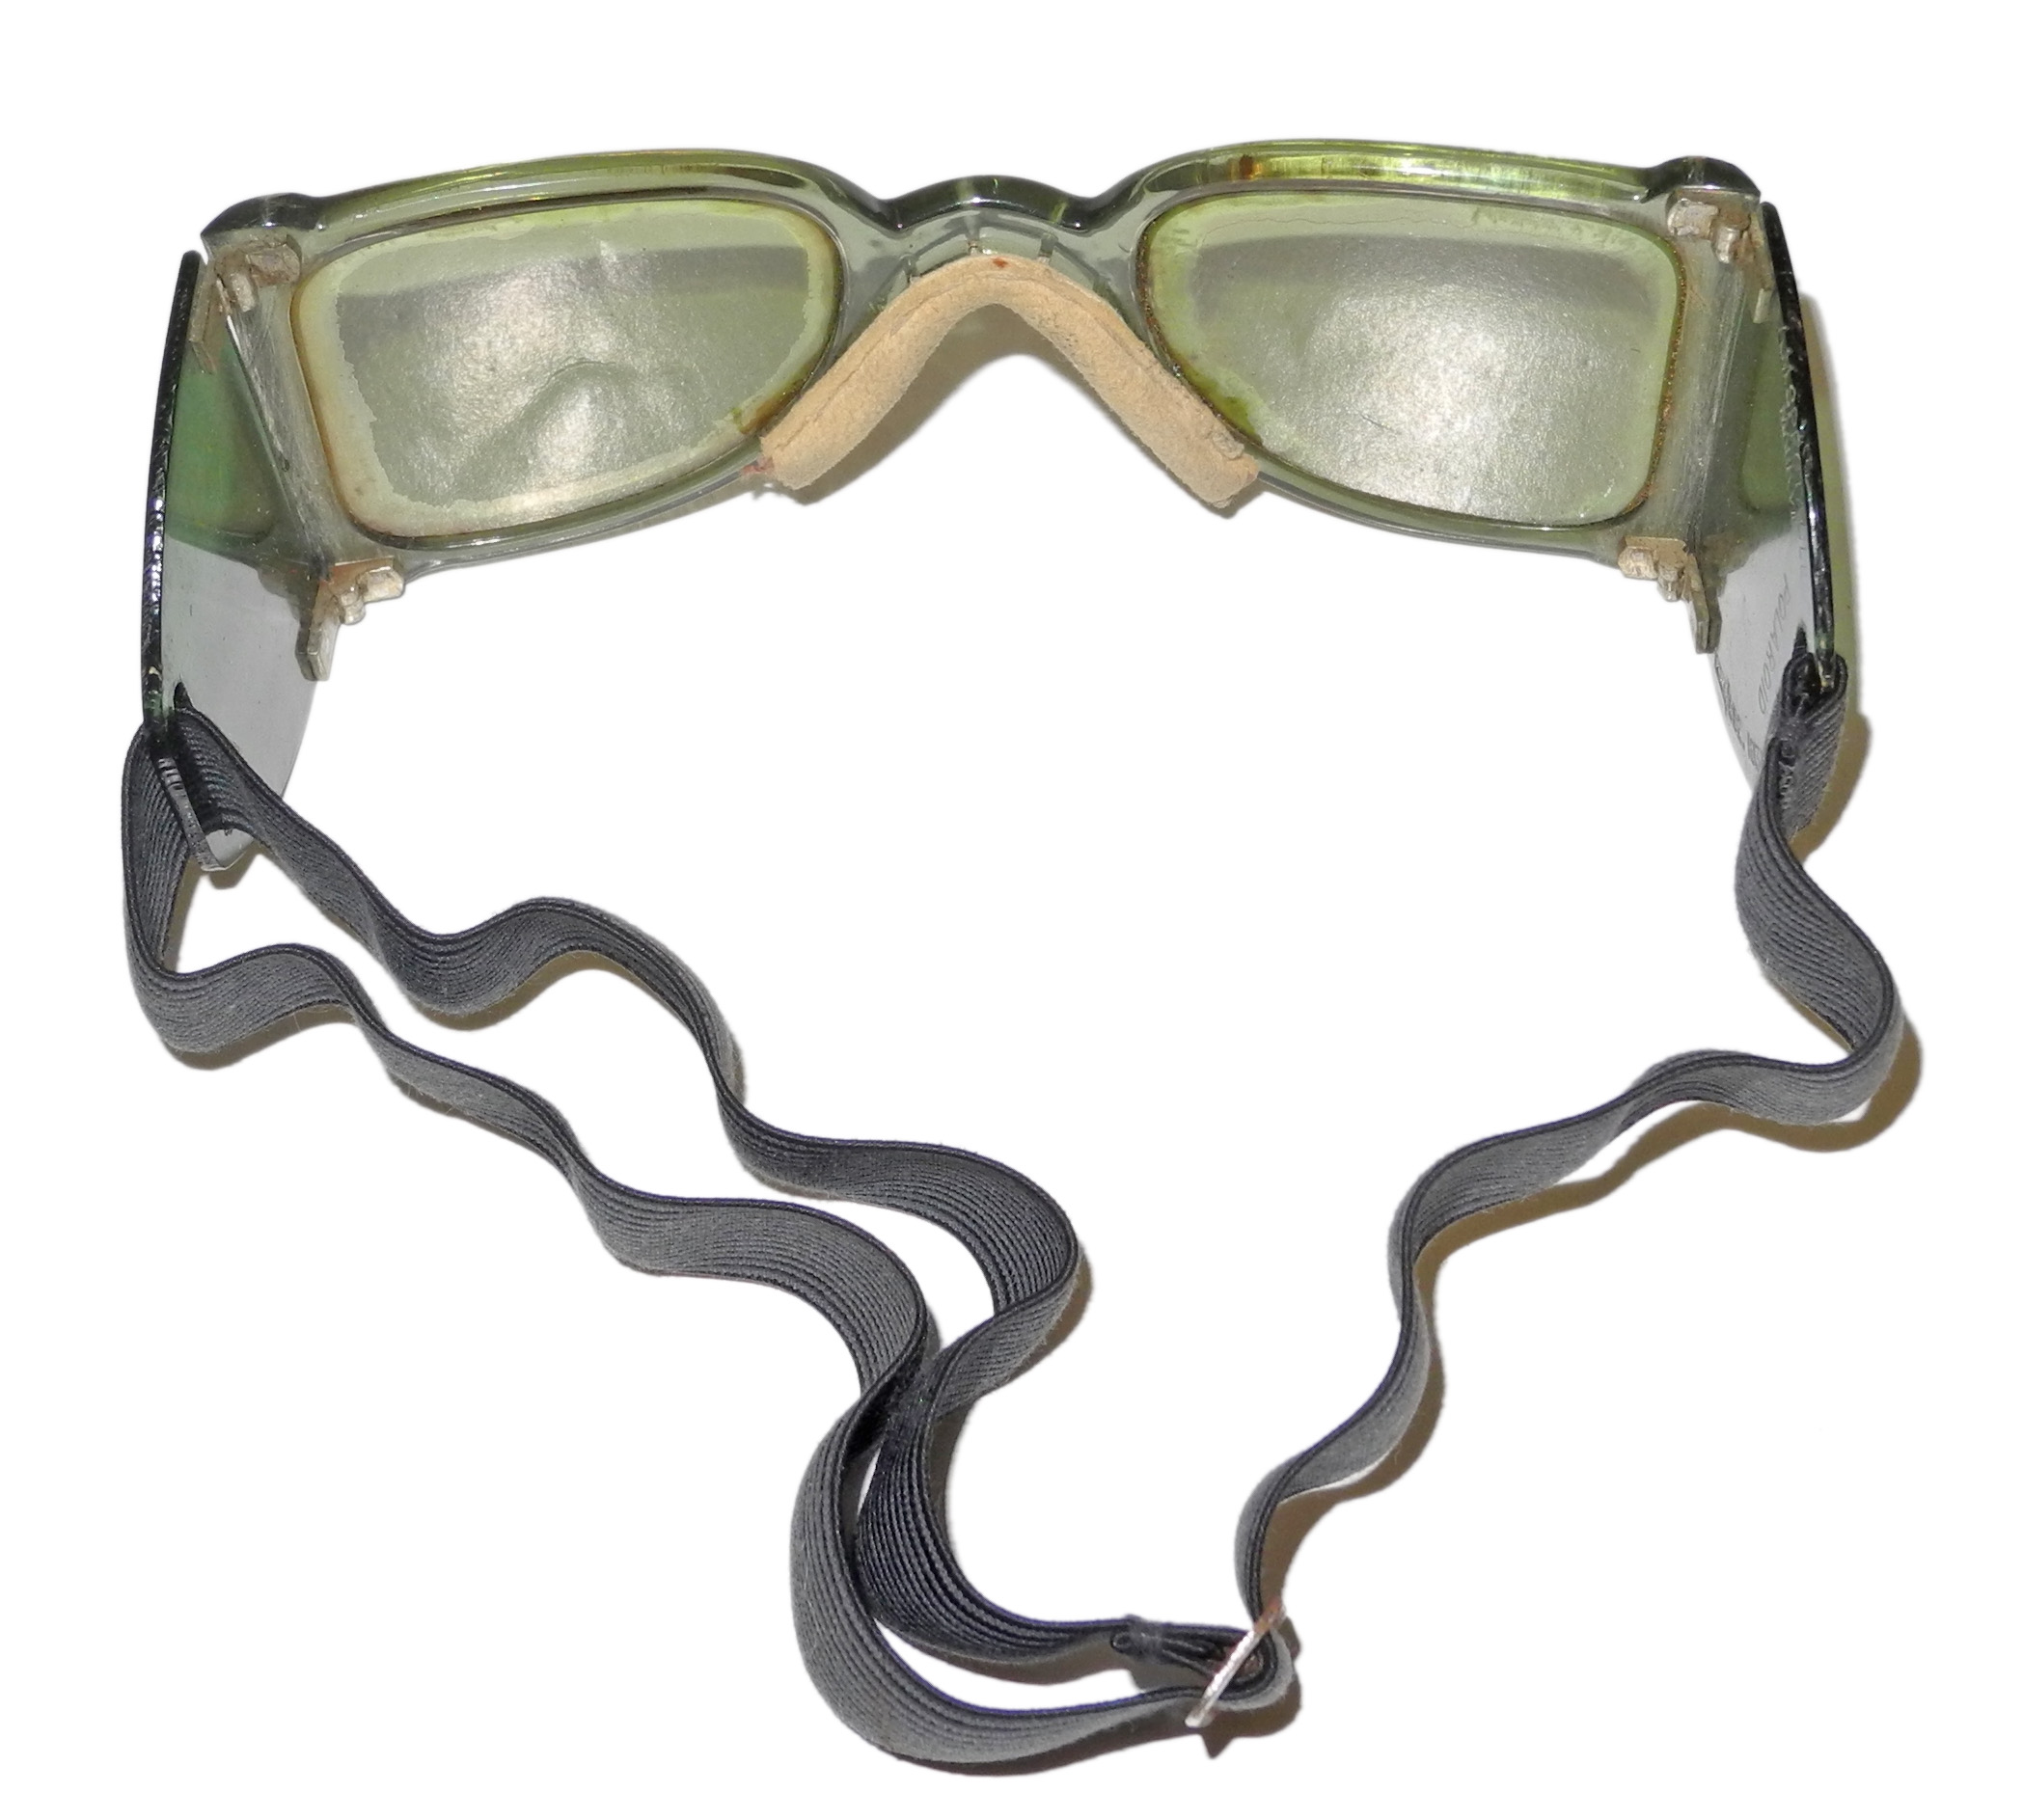 RAF Mk VI anti-glare spectacles